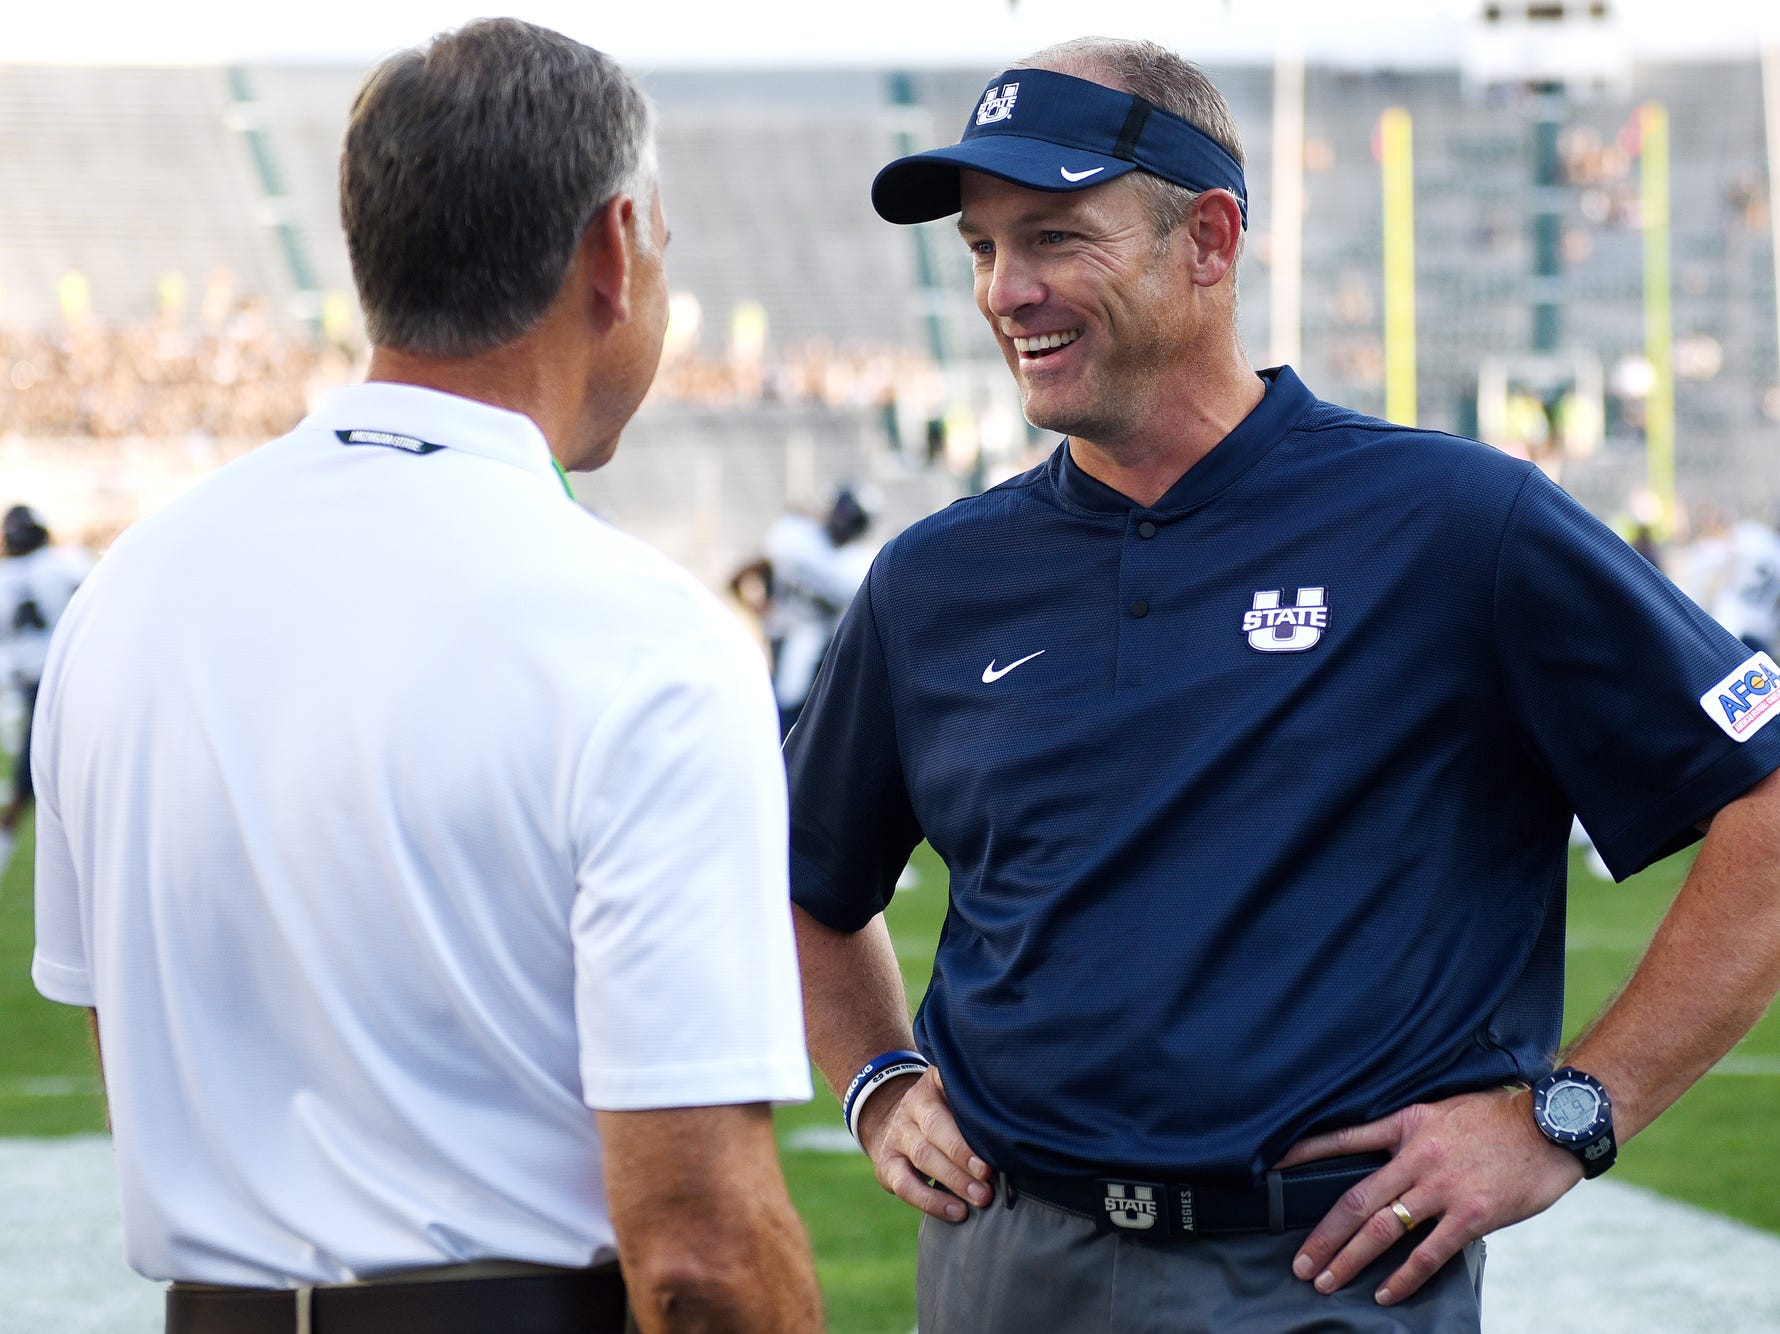 Utah State head coach Matt Wells, right, talks with MSU head coach Mark Dantonio before their game on Friday, Aug. 31, 2018, at Spartan Stadium in East Lansing.